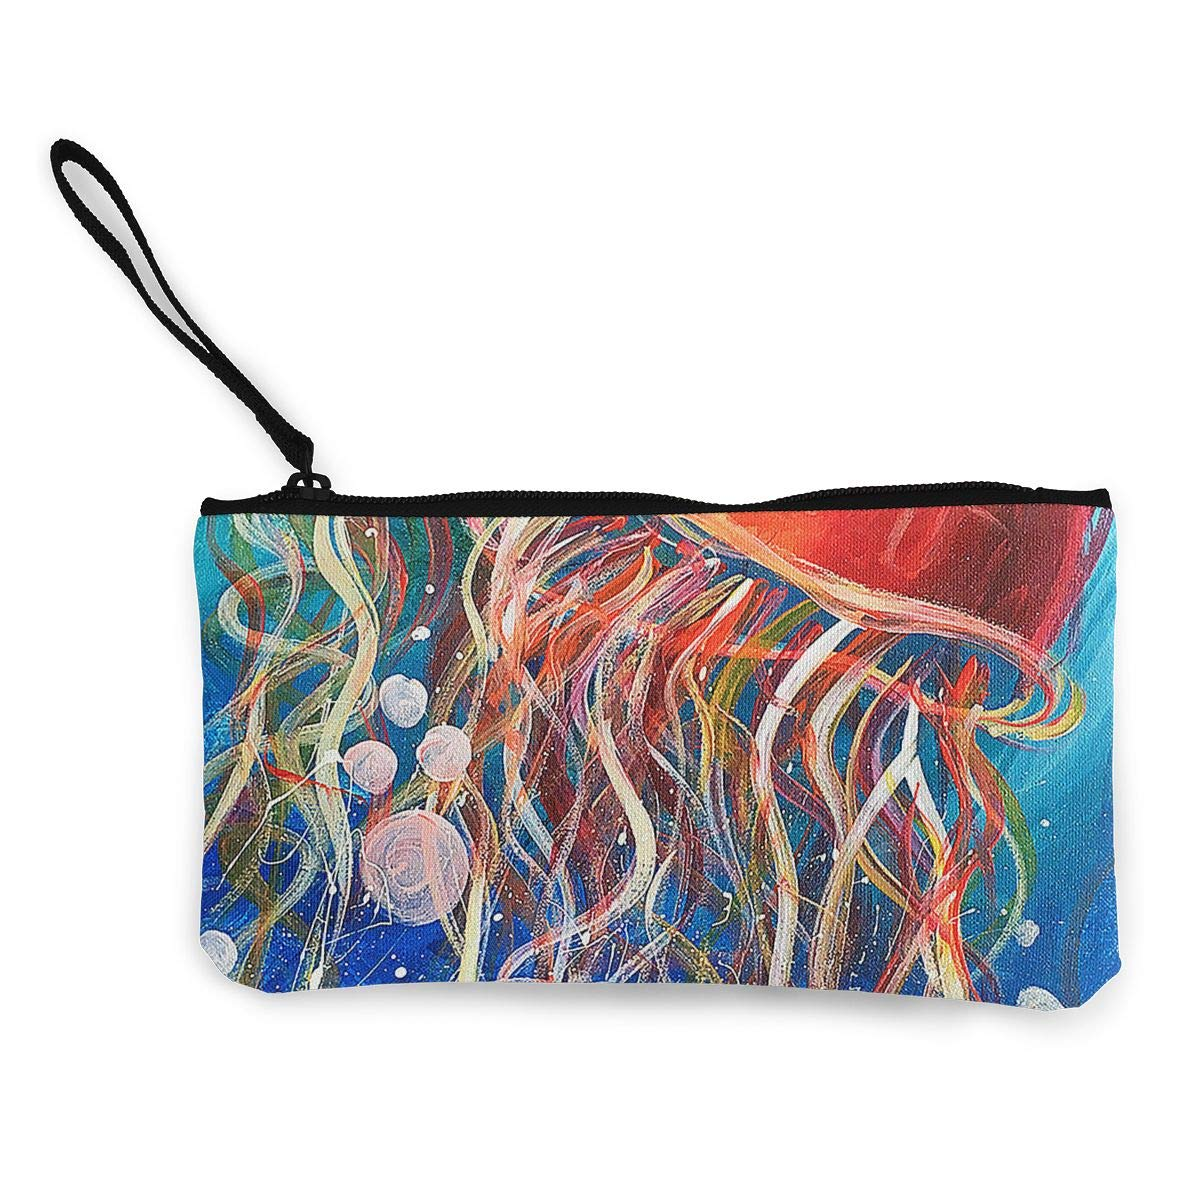 Maple Memories Jellyfish Animal Portable Canvas Coin Purse Change Purse Pouch Mini Wallet Gifts For Women Girls